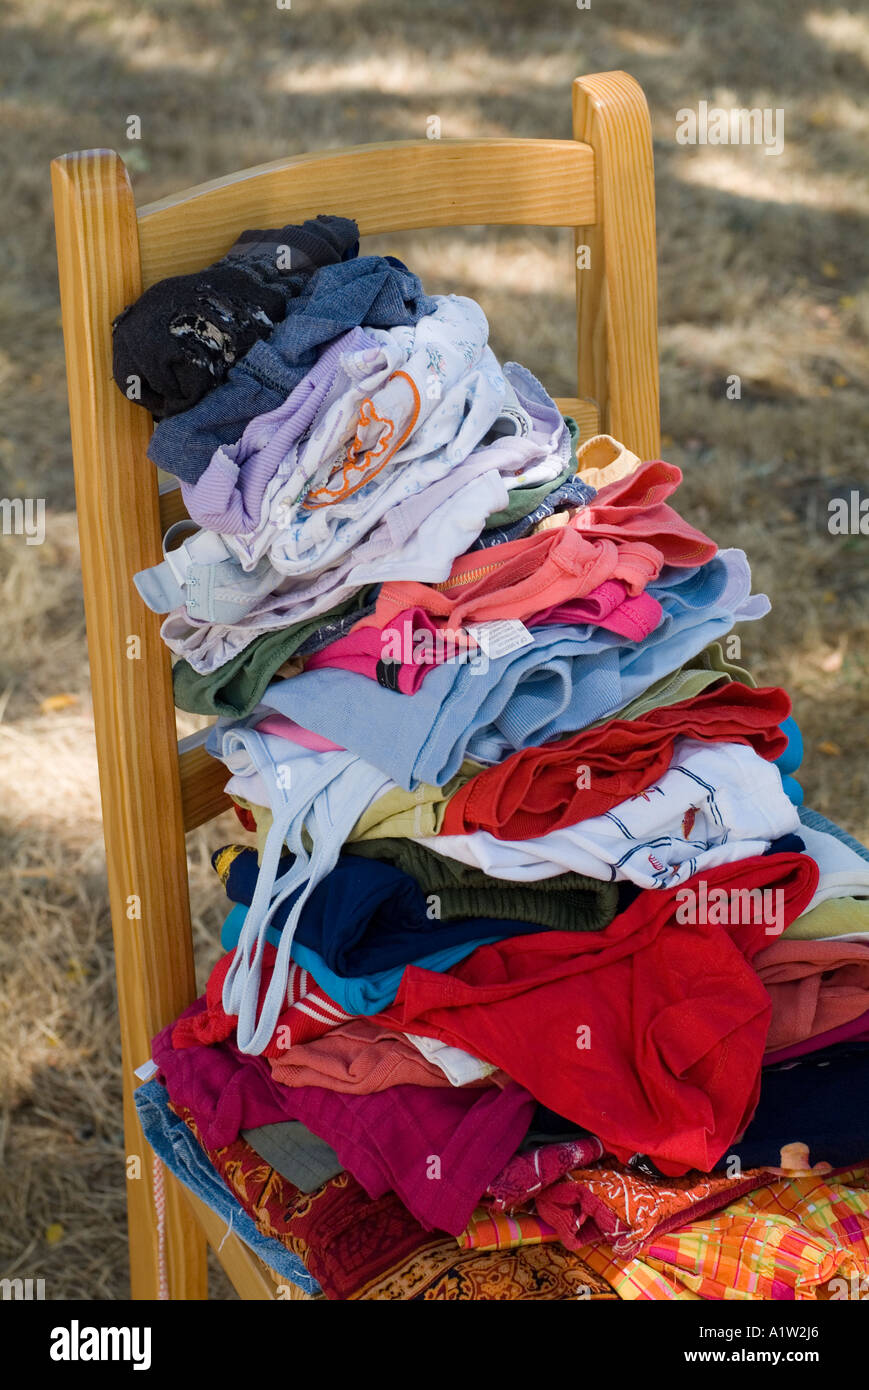 Stack of laundry on a chair in the backyard / garden. - Stock Image